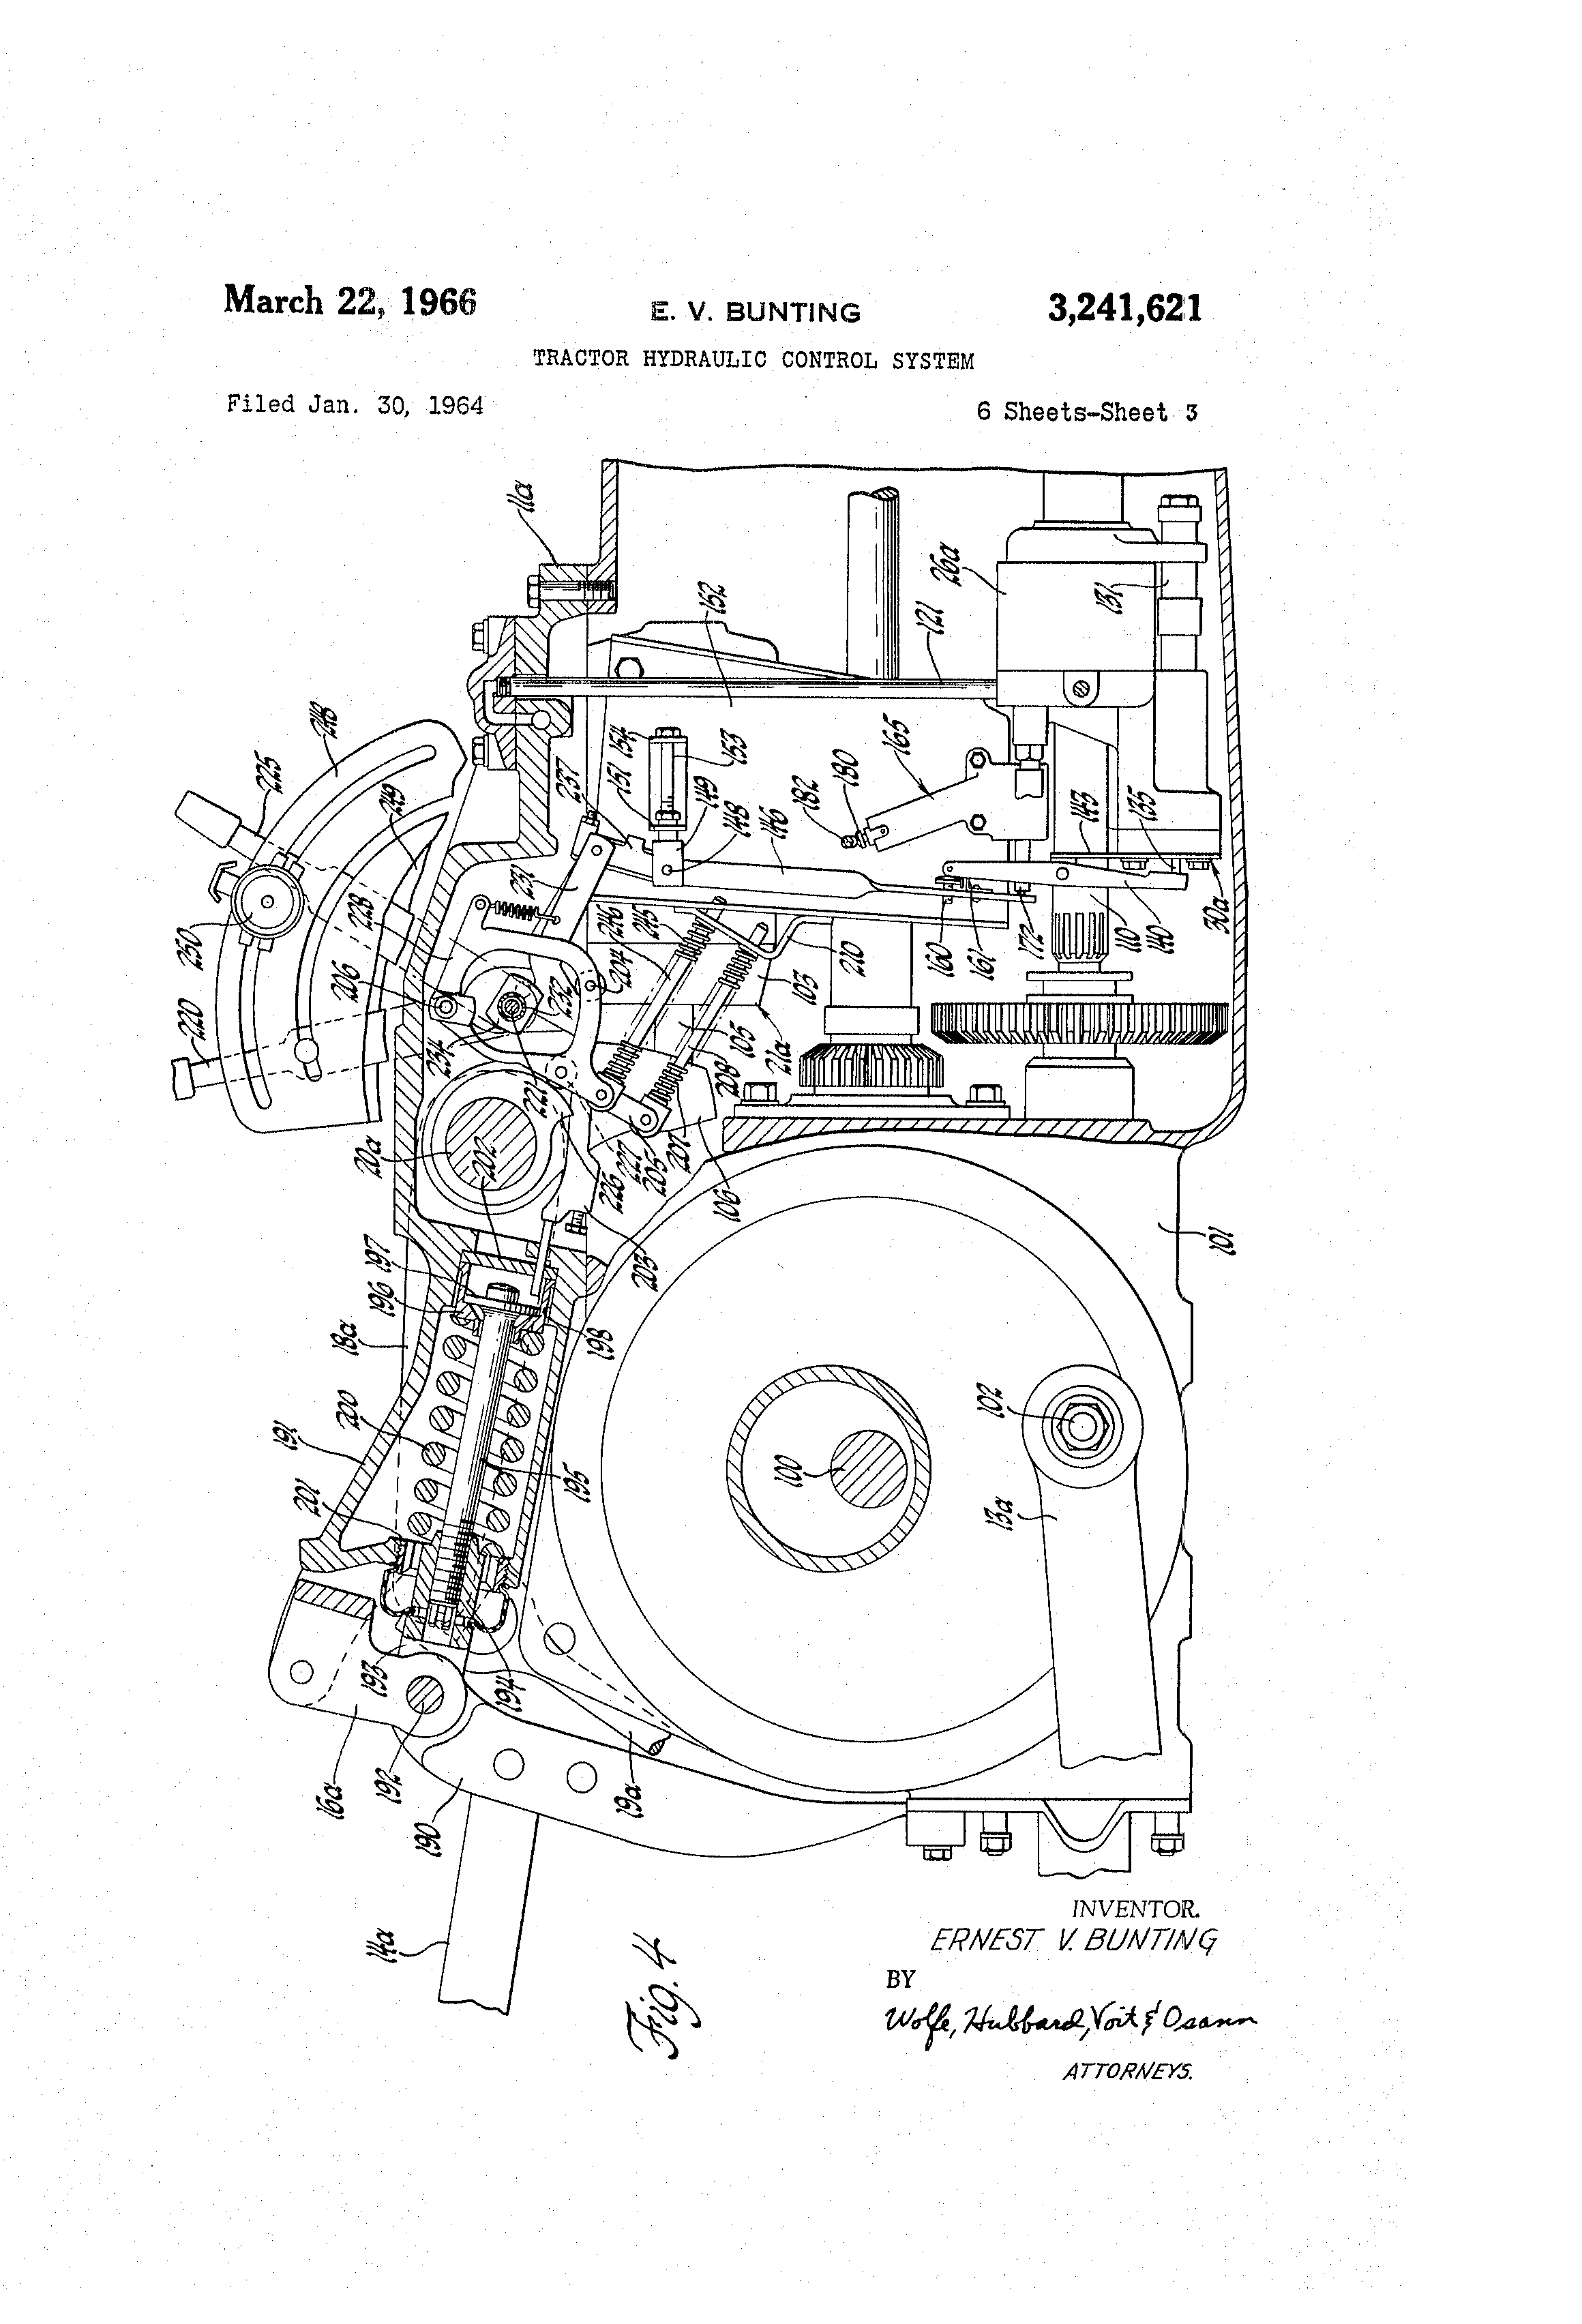 Hydraulic System Drawing : Patent us tractor hydraulic control system